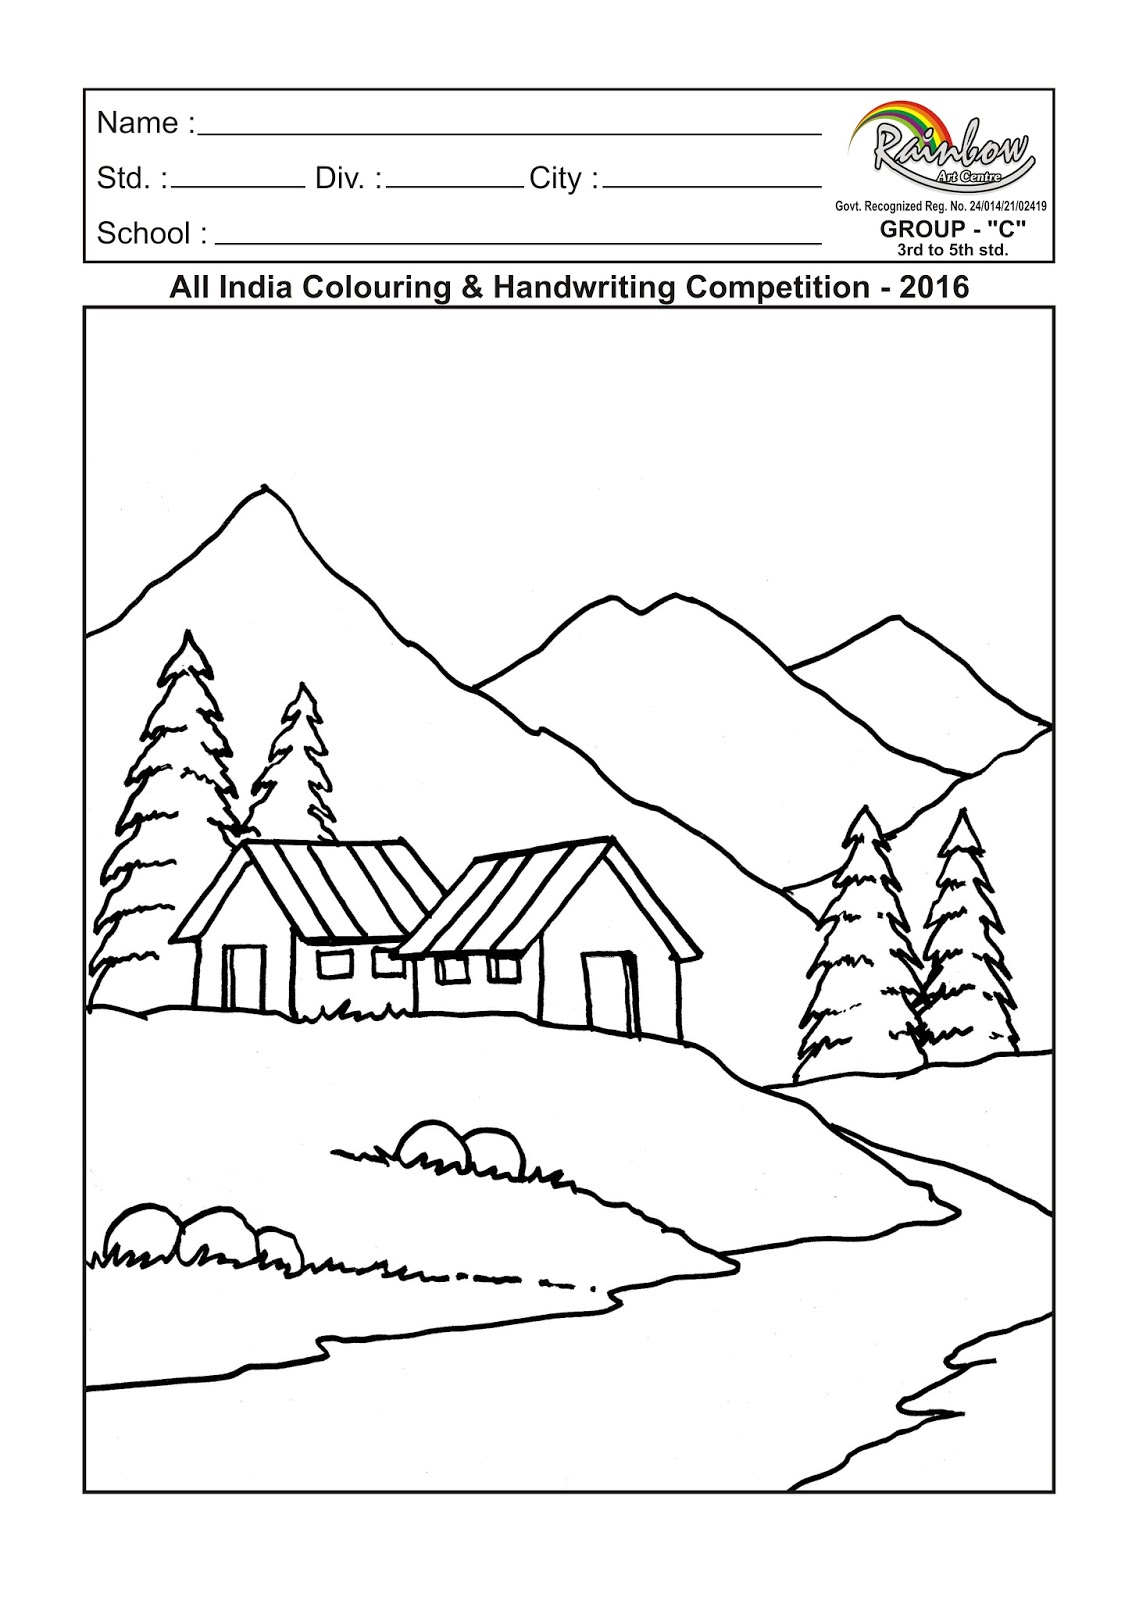 All India Colouring and Handwriting Competition